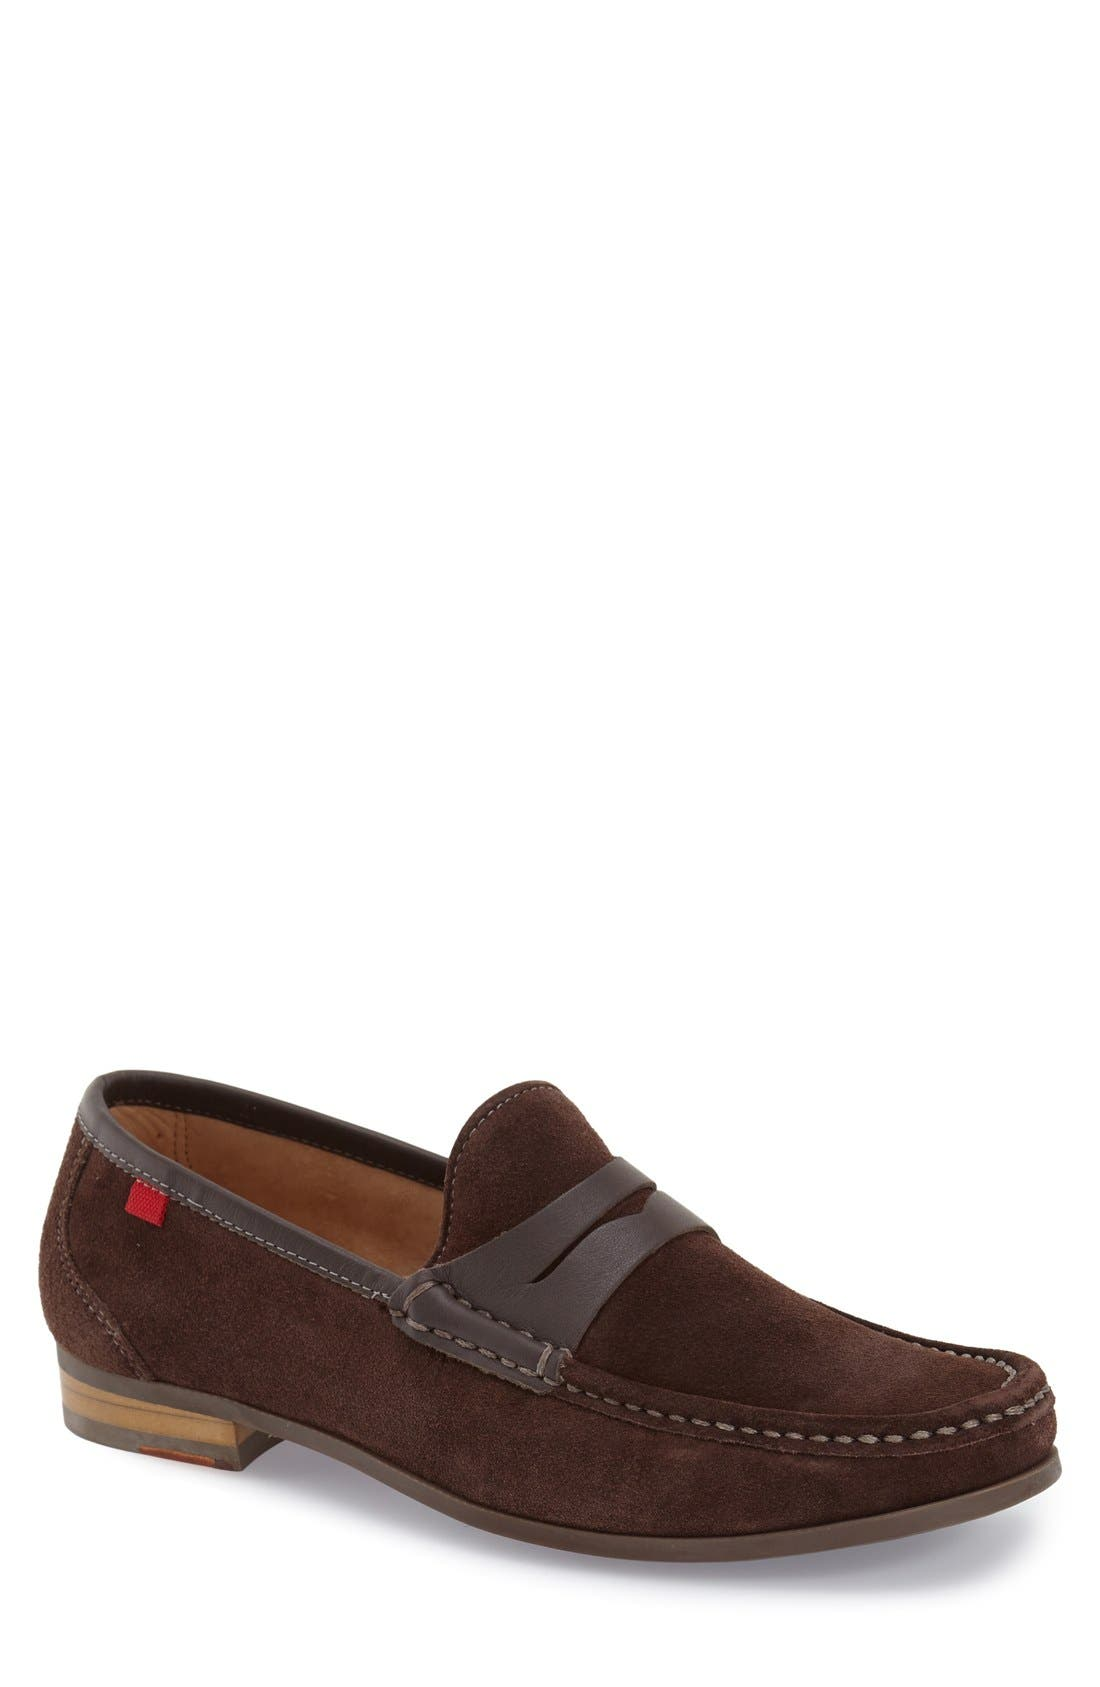 MARC JOSEPH NEW YORK 'Union Square' Penny Loafer